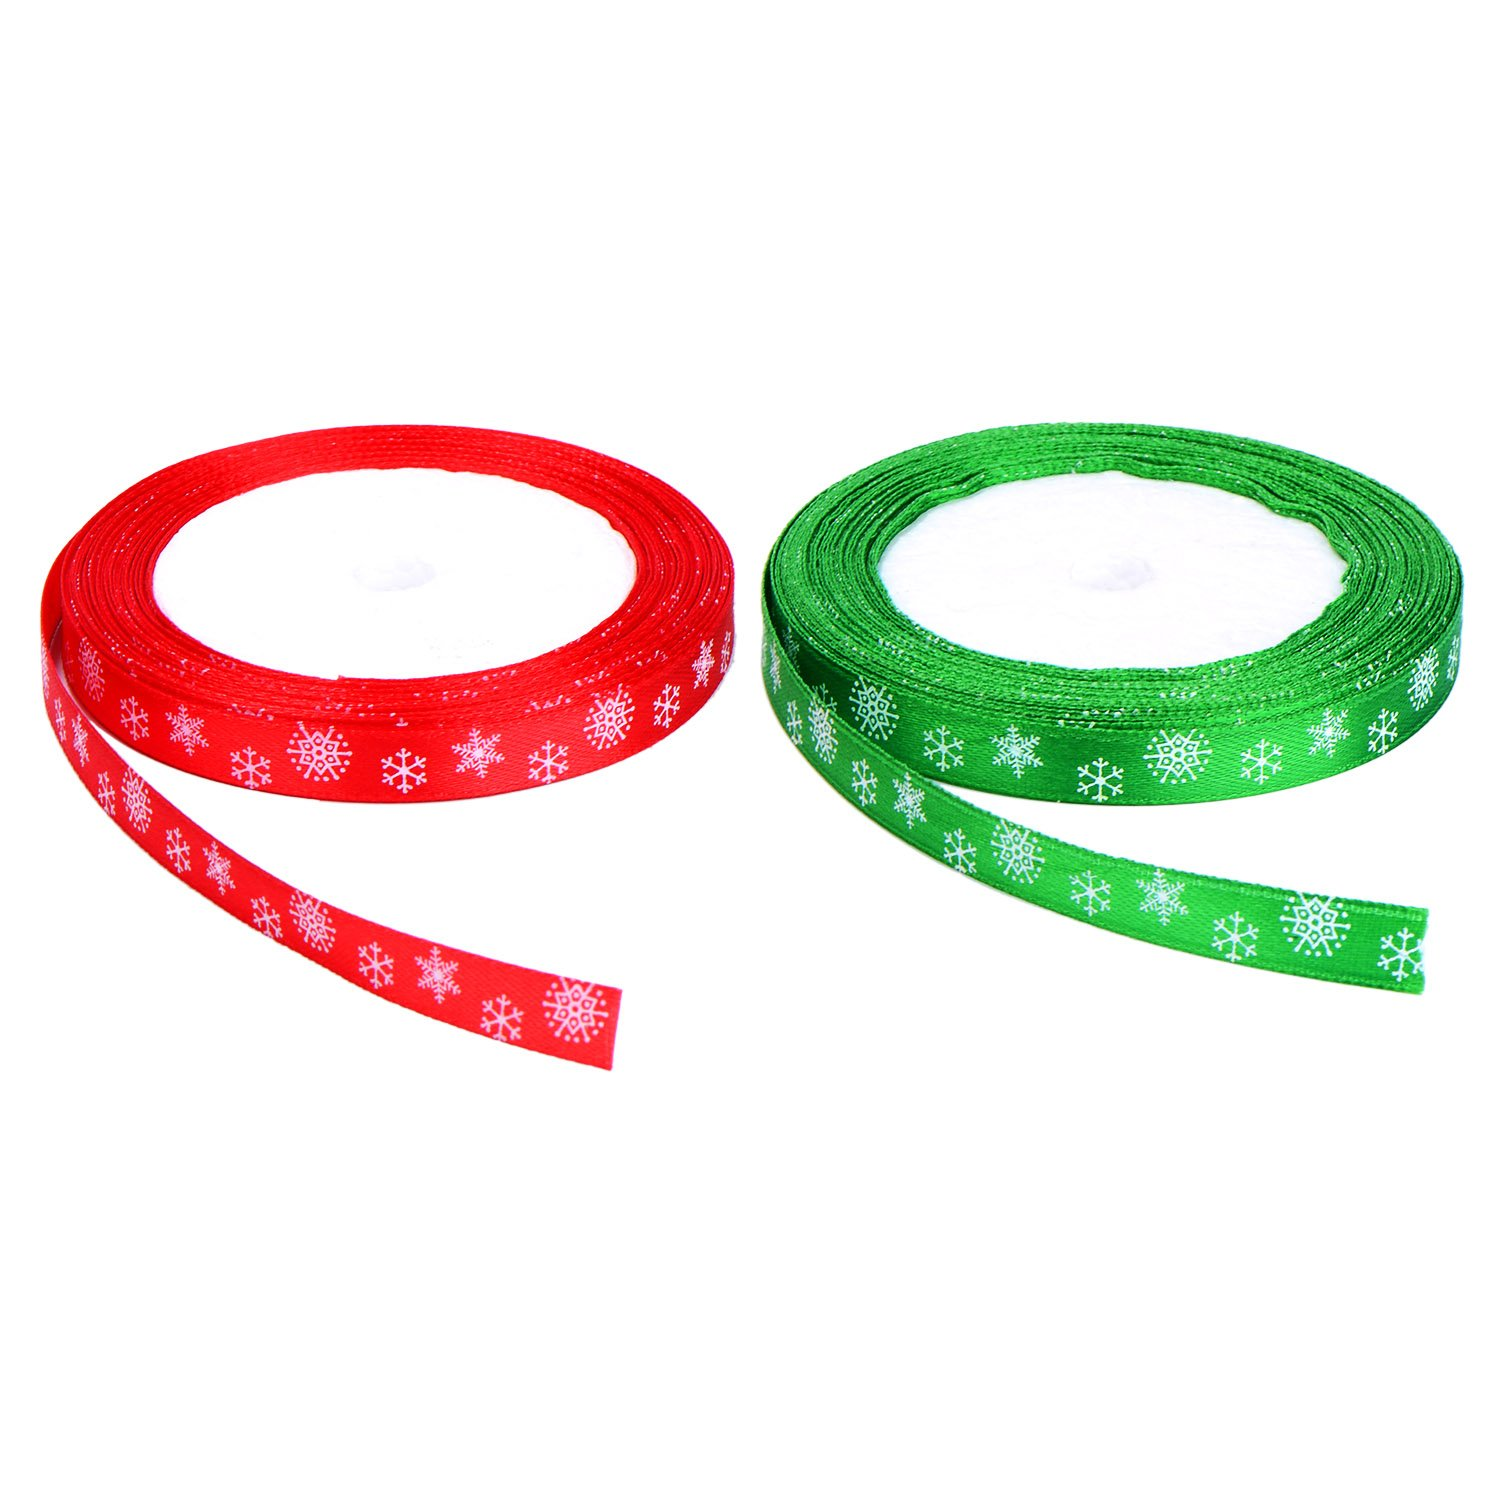 Total 40 Meters (10 mm Wide) Christmas Satin Ribbon with Snowflake Pattern (Red and Green) Shappy